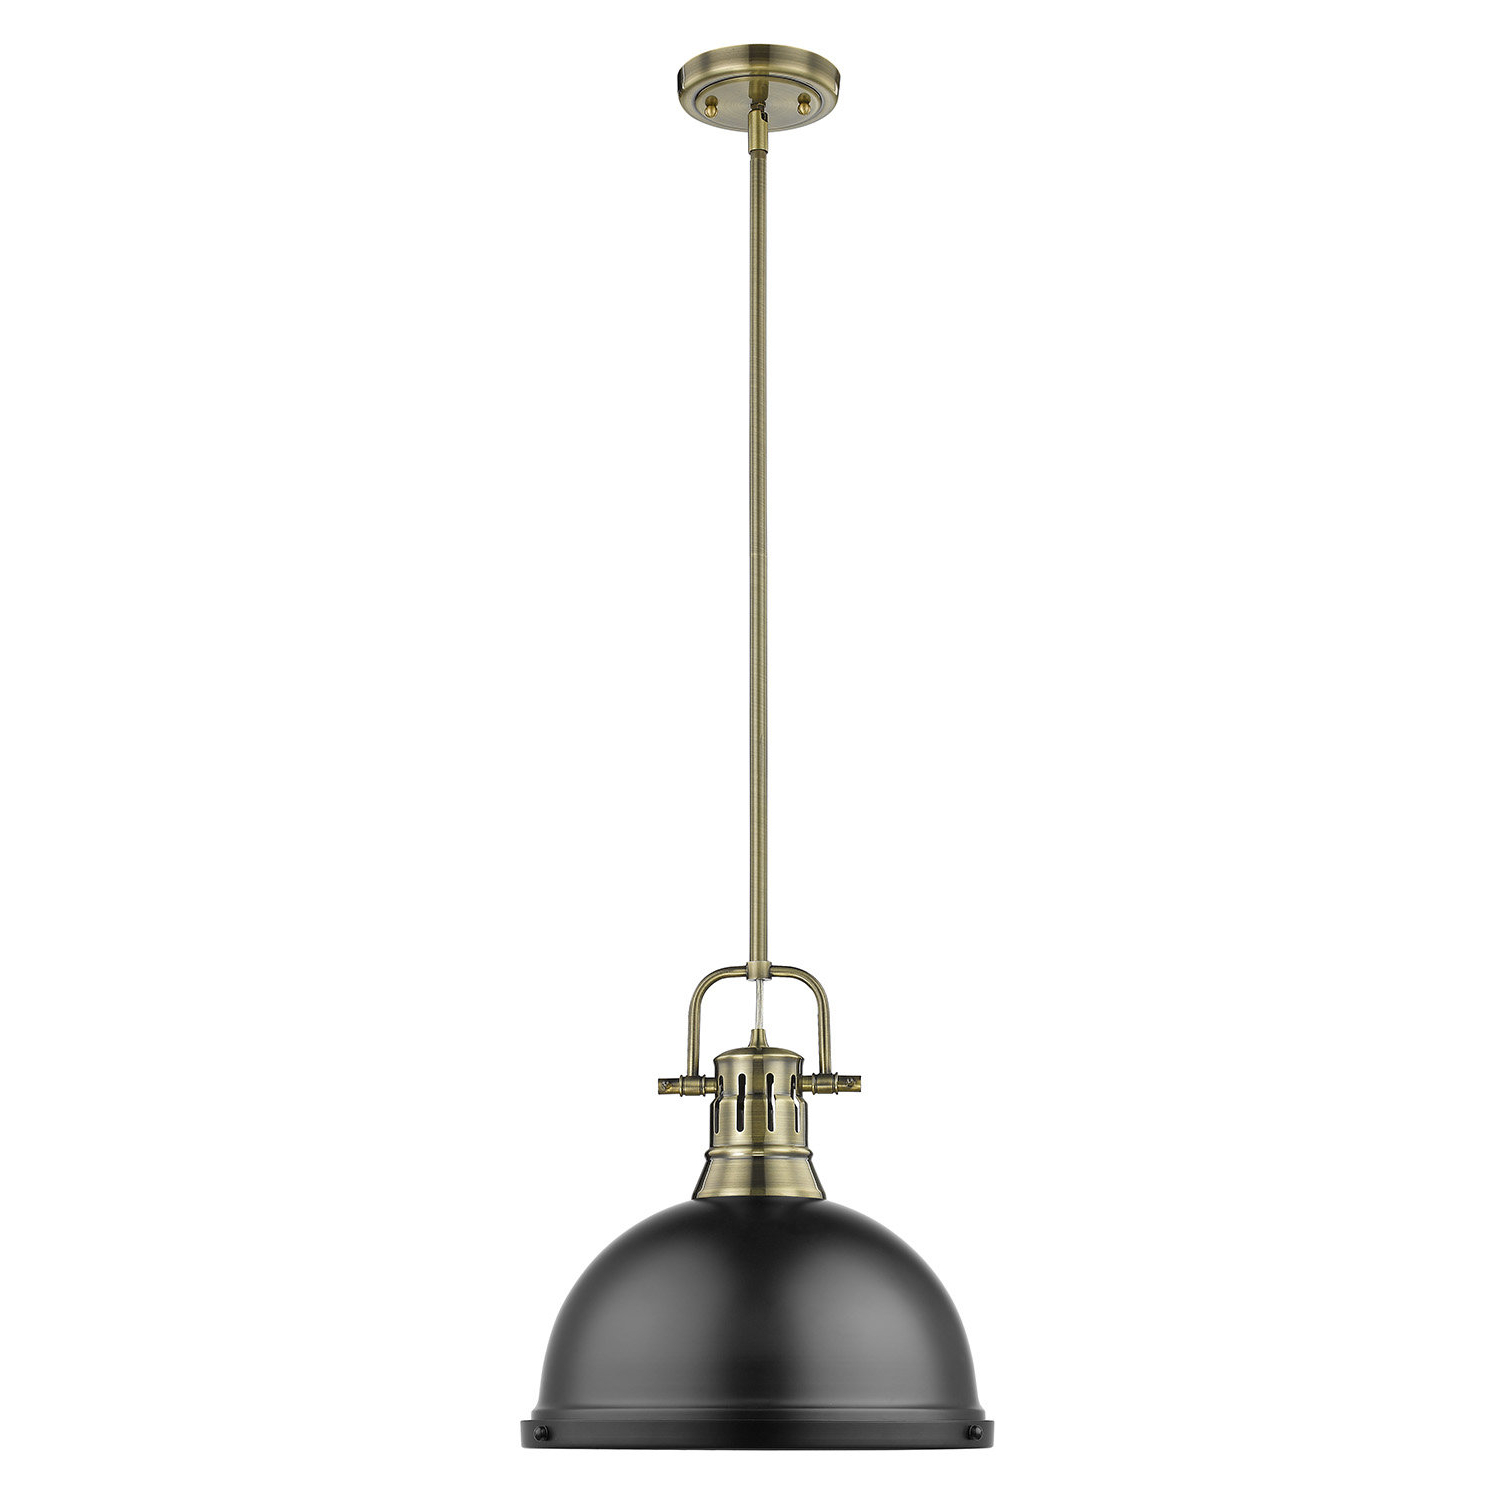 Bodalla 1 Light Single Dome Pendant In Famous Southlake 1 Light Single Dome Pendants (View 4 of 20)